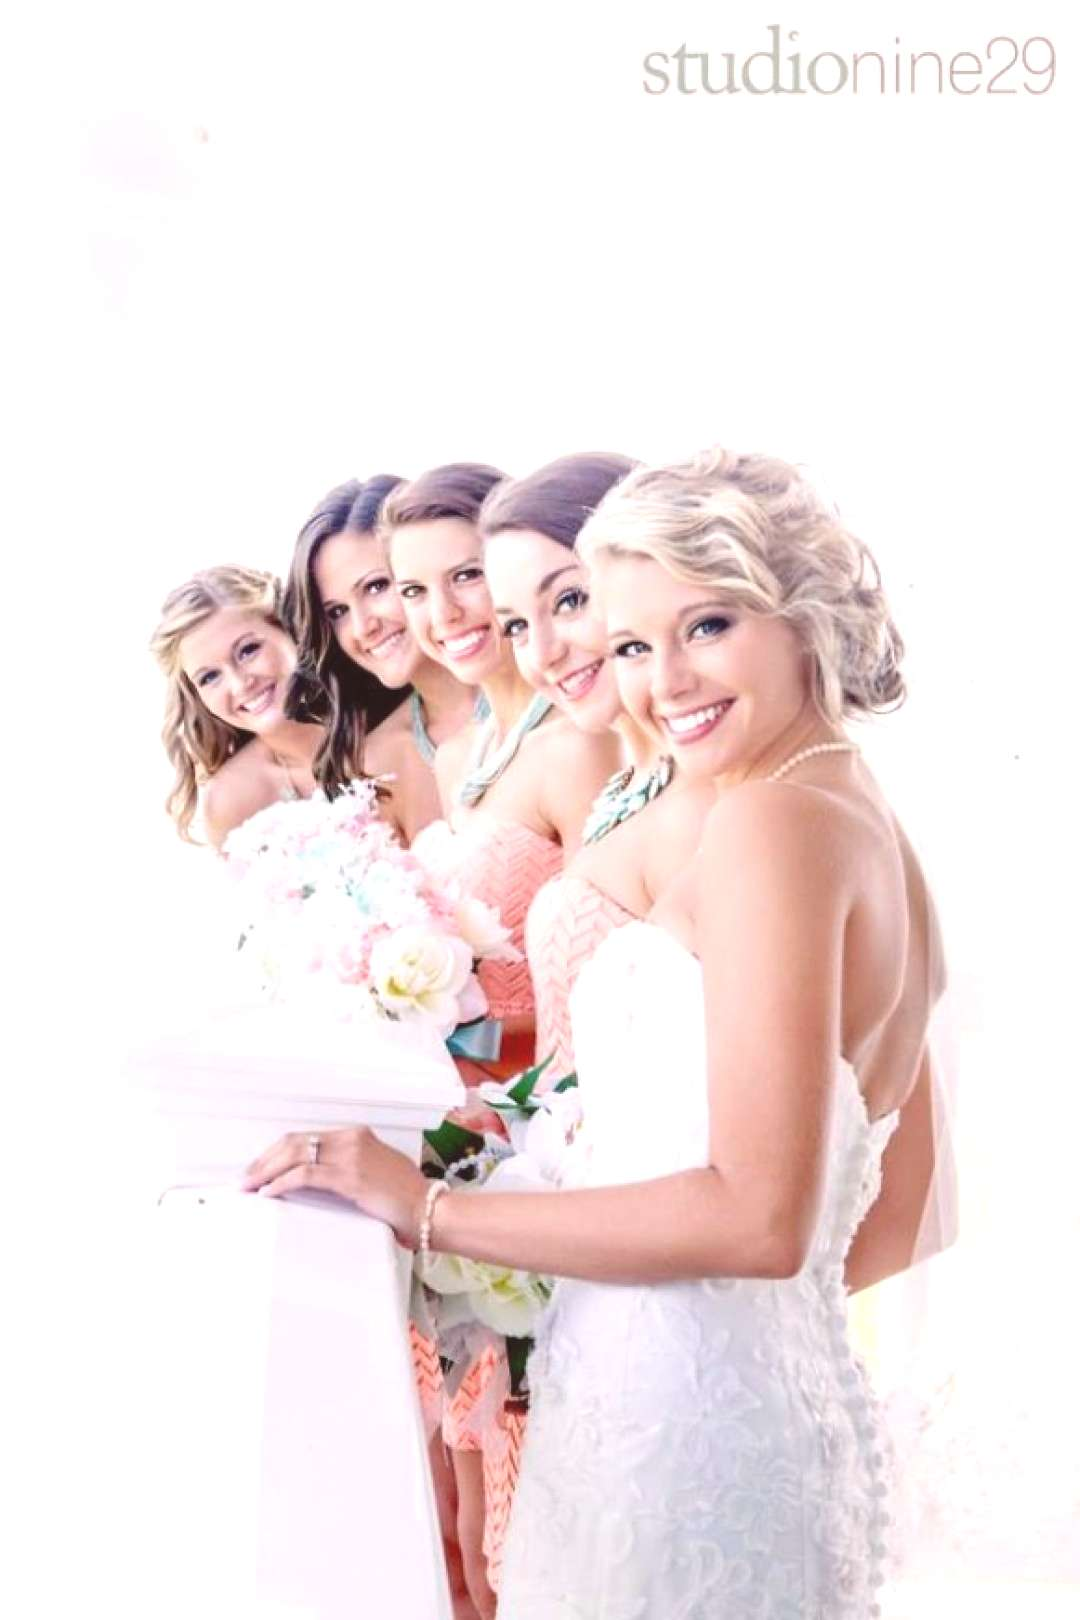 24 Poses That Make for Great Wedding Photos!